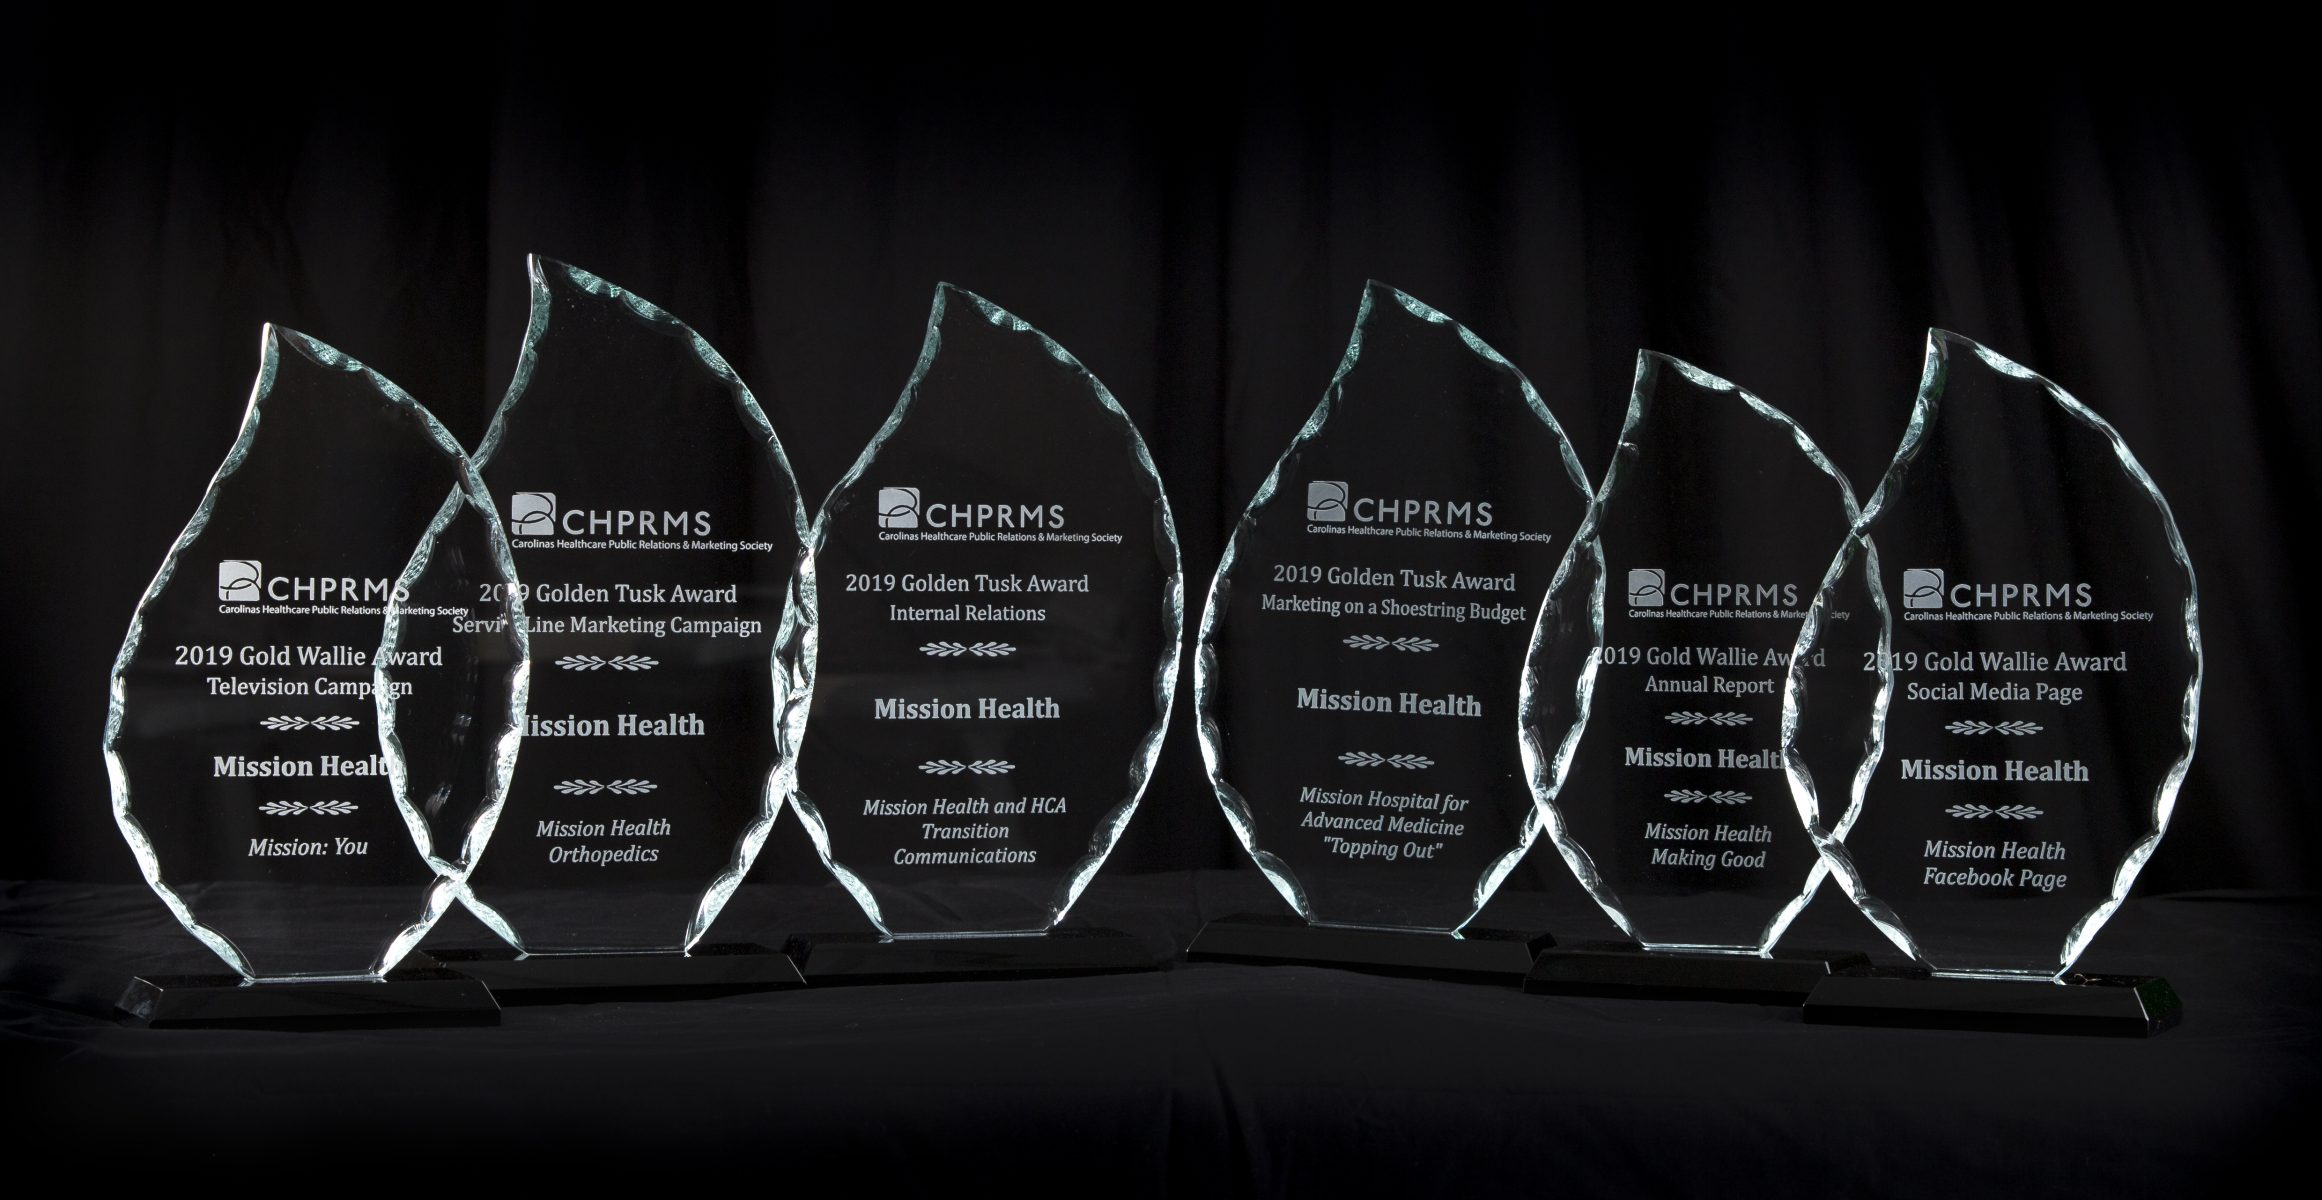 Marketing and Communications Wallie Awards 2019 - Picture of trophies on black background